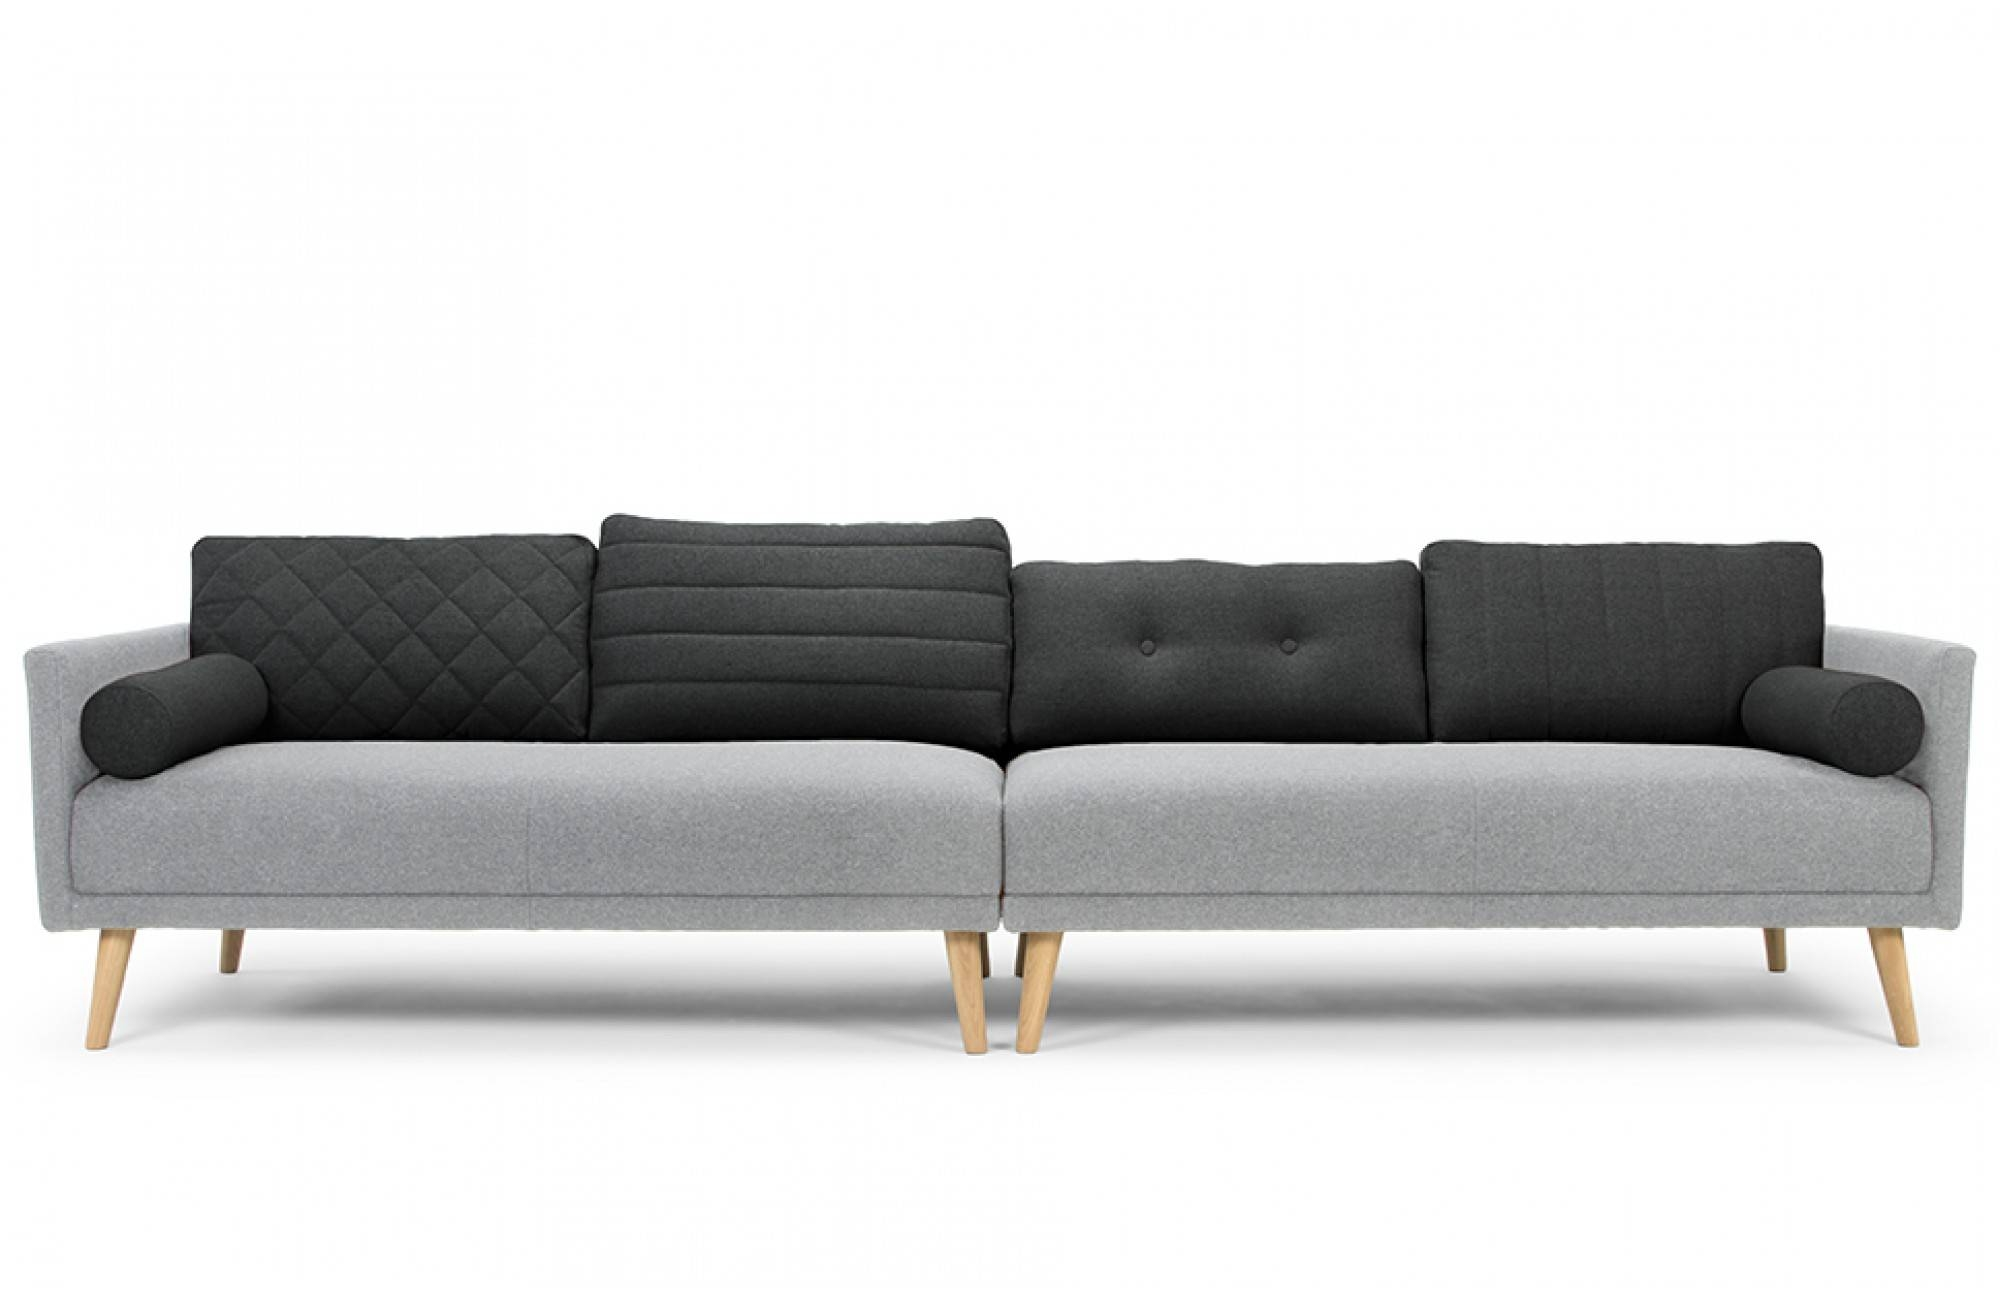 30 best collection of four seater sofas. Black Bedroom Furniture Sets. Home Design Ideas